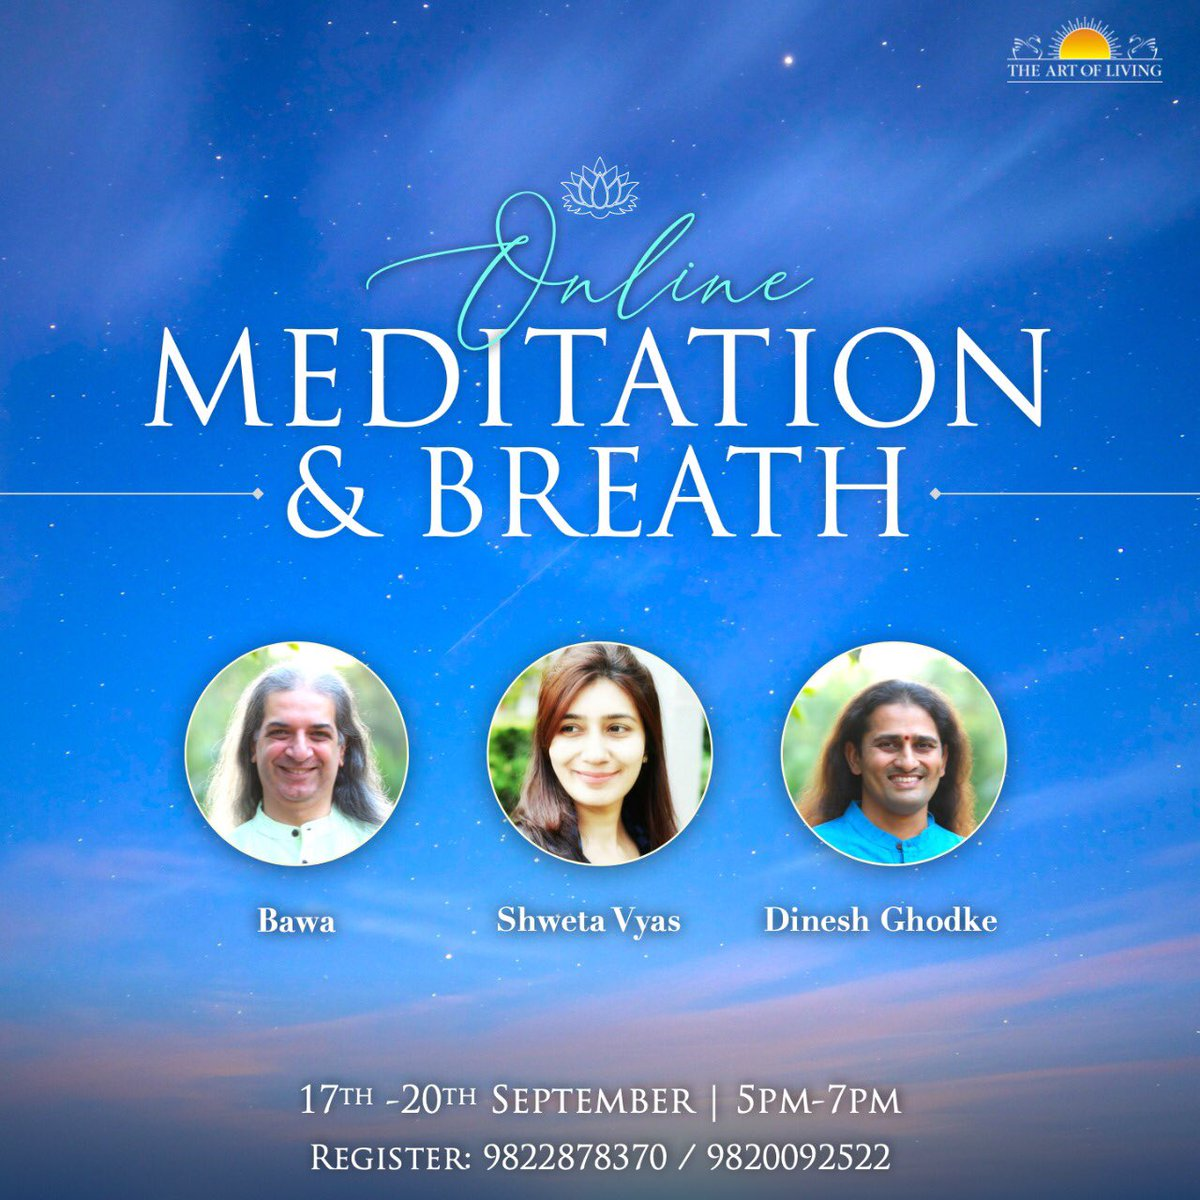 Meditation and Breath Workshop - one of the most effective and enjoyable ways I know for anyone to de-stress and hence increase creativity, productivity and efficiency. Do register and participate... https://t.co/yQ8A21PFux